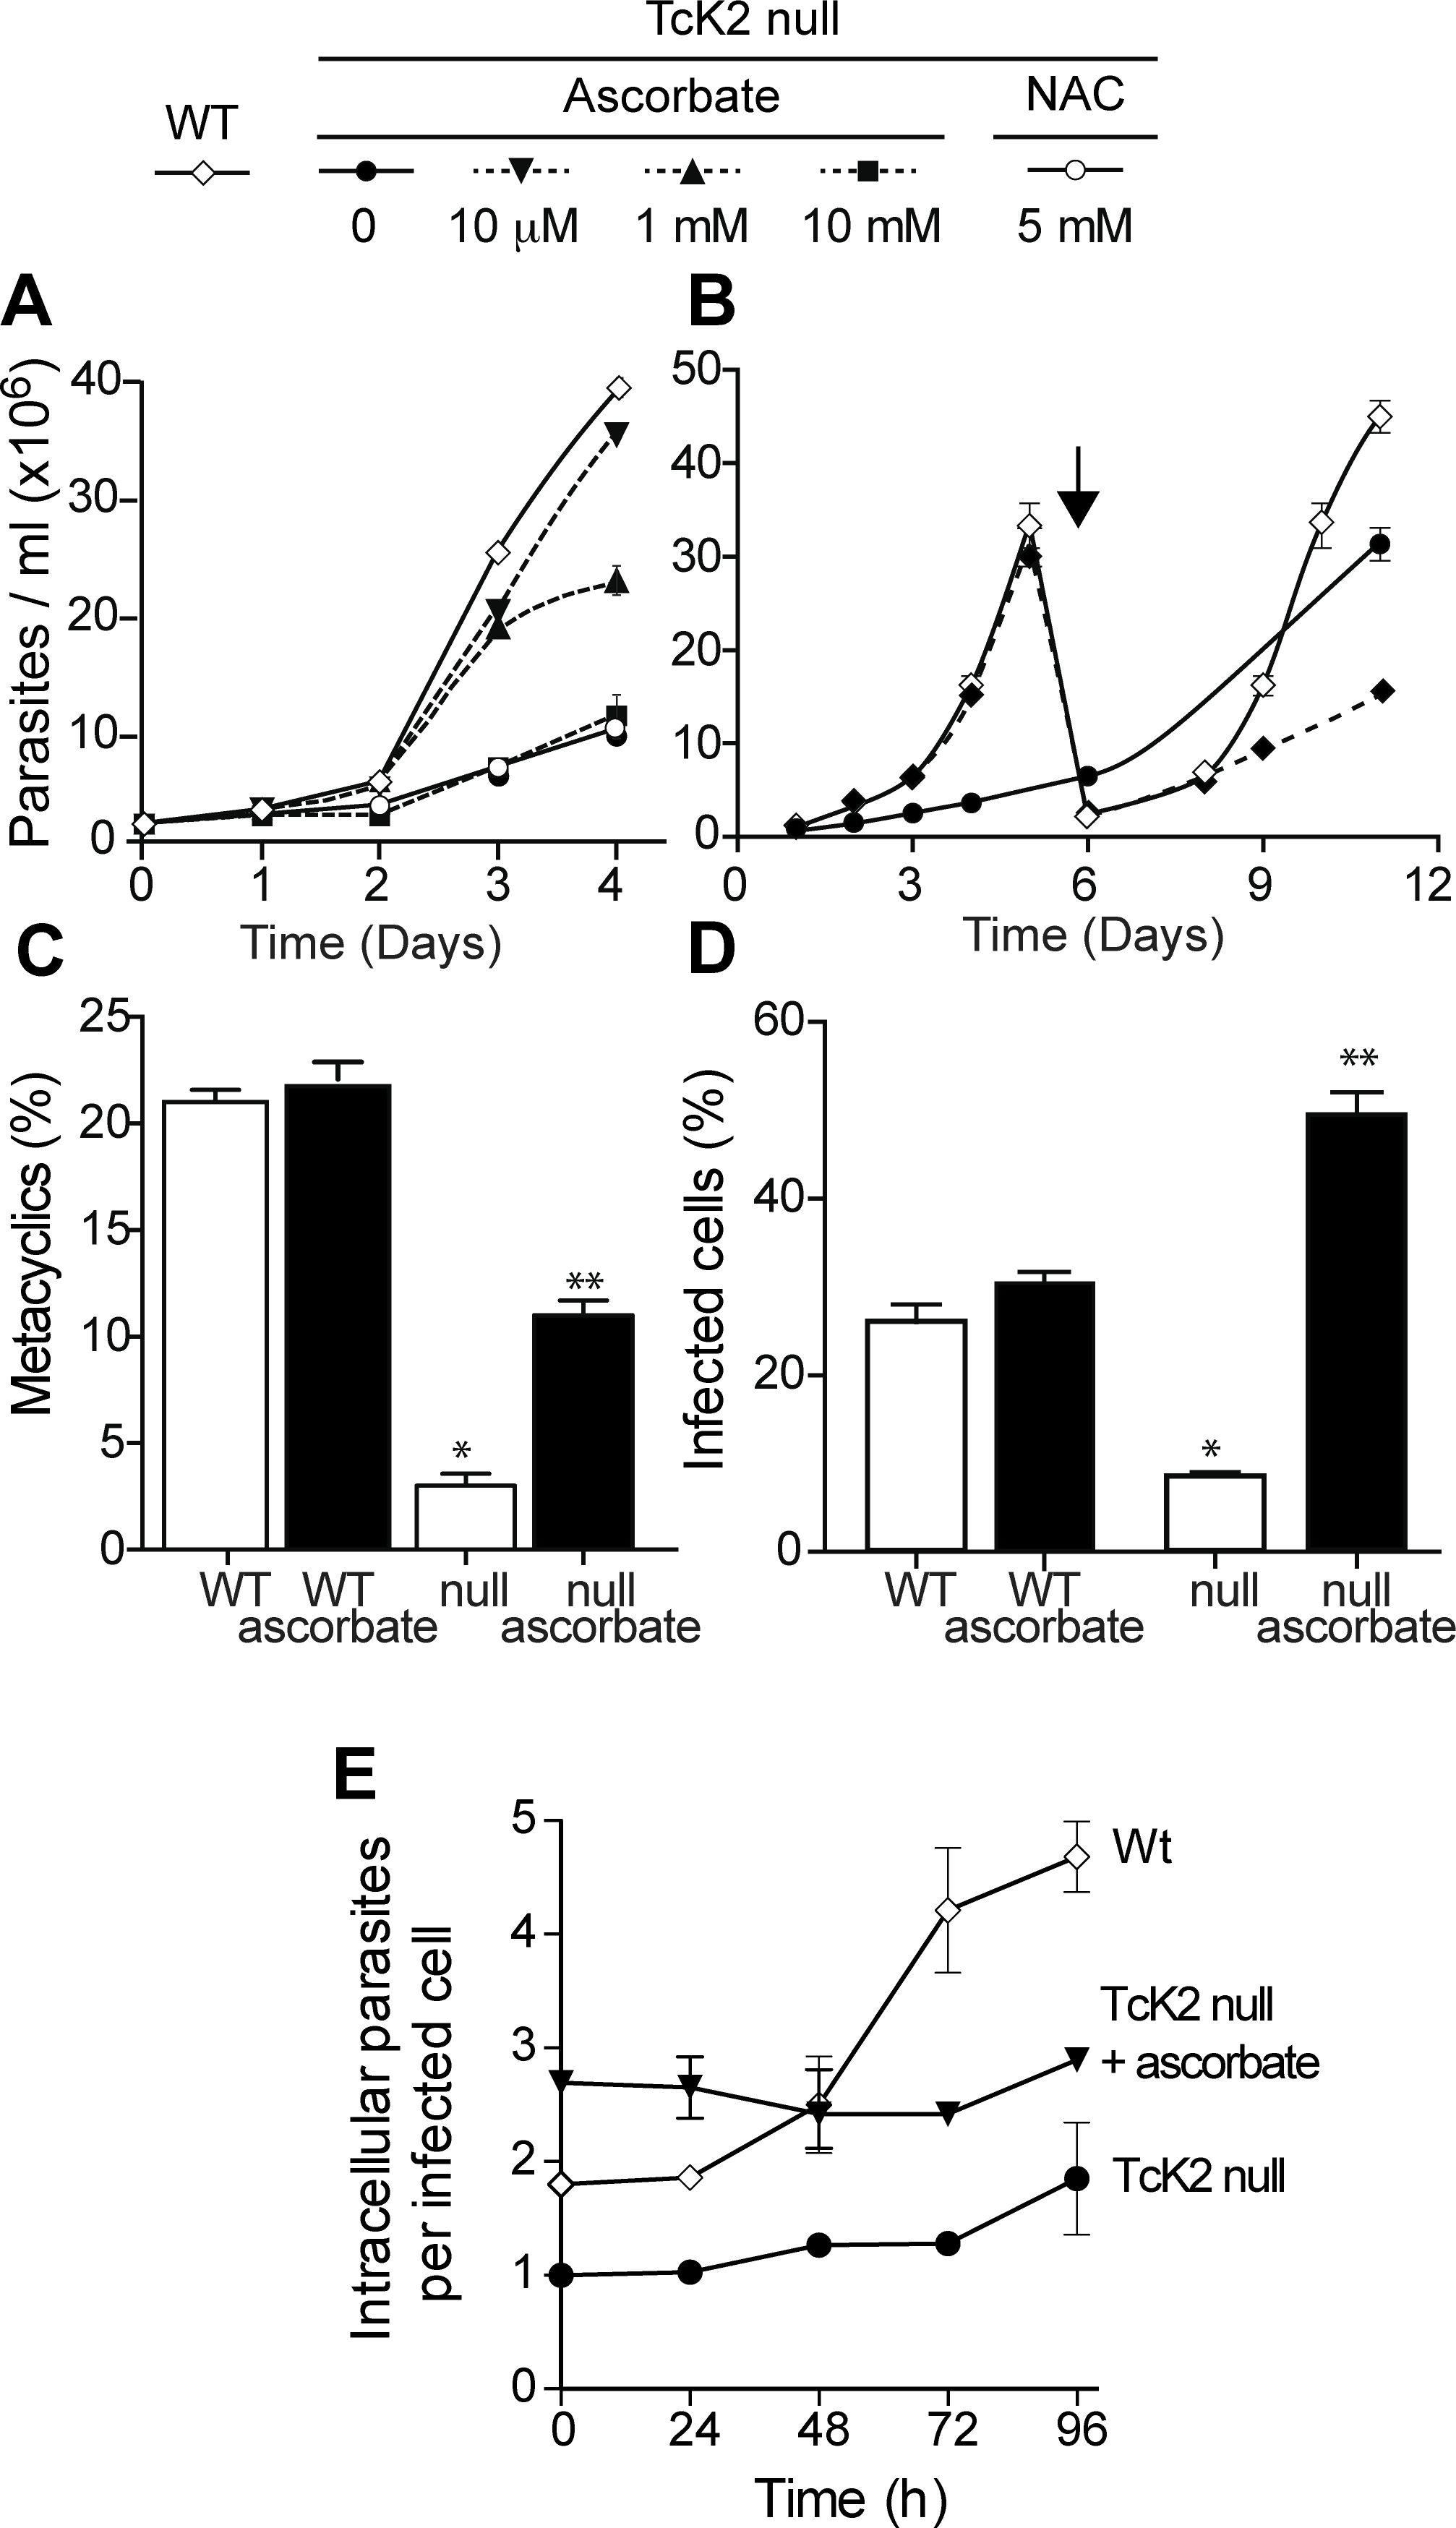 Ascorbate restores TcK2 null parasite growth, differentiation and infectivity, but not intracellular proliferation.